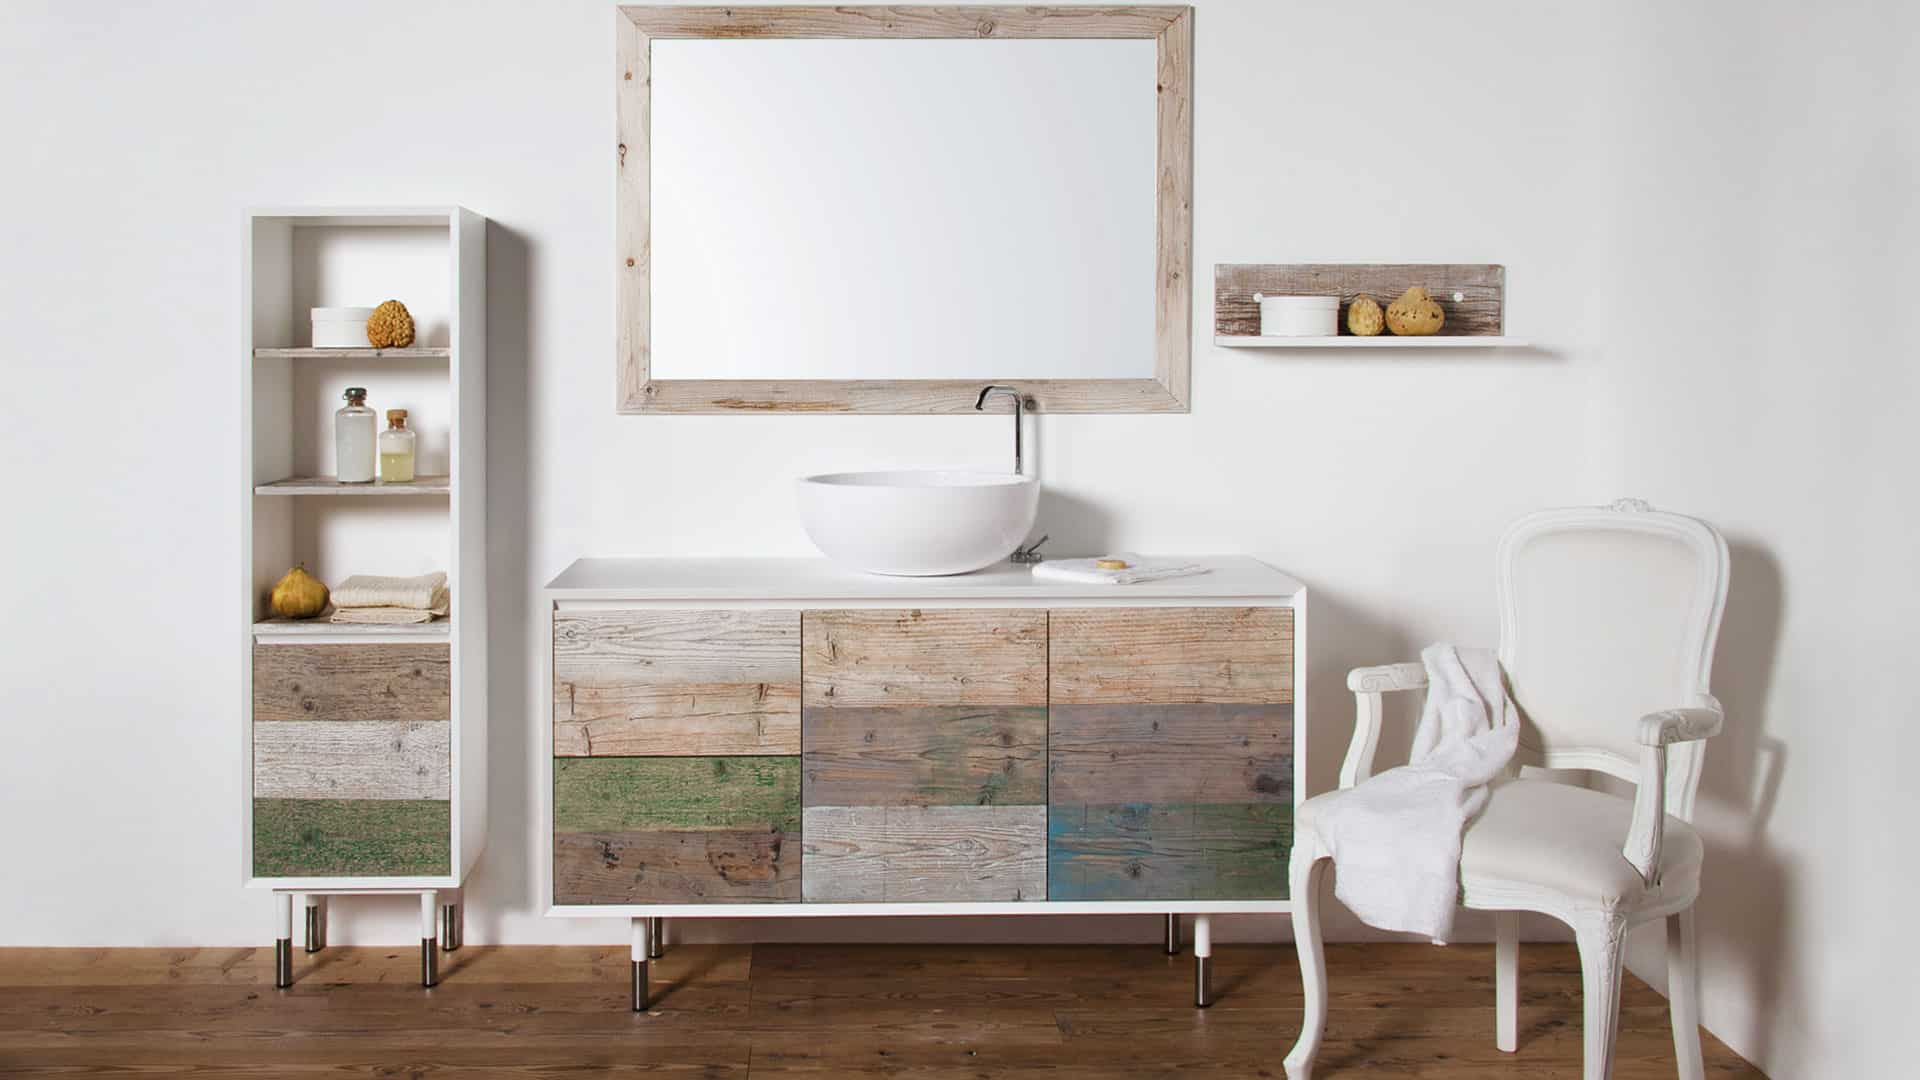 Amazing View in gallery bianchini and capponi materia multicolor weathered wood look bathroom